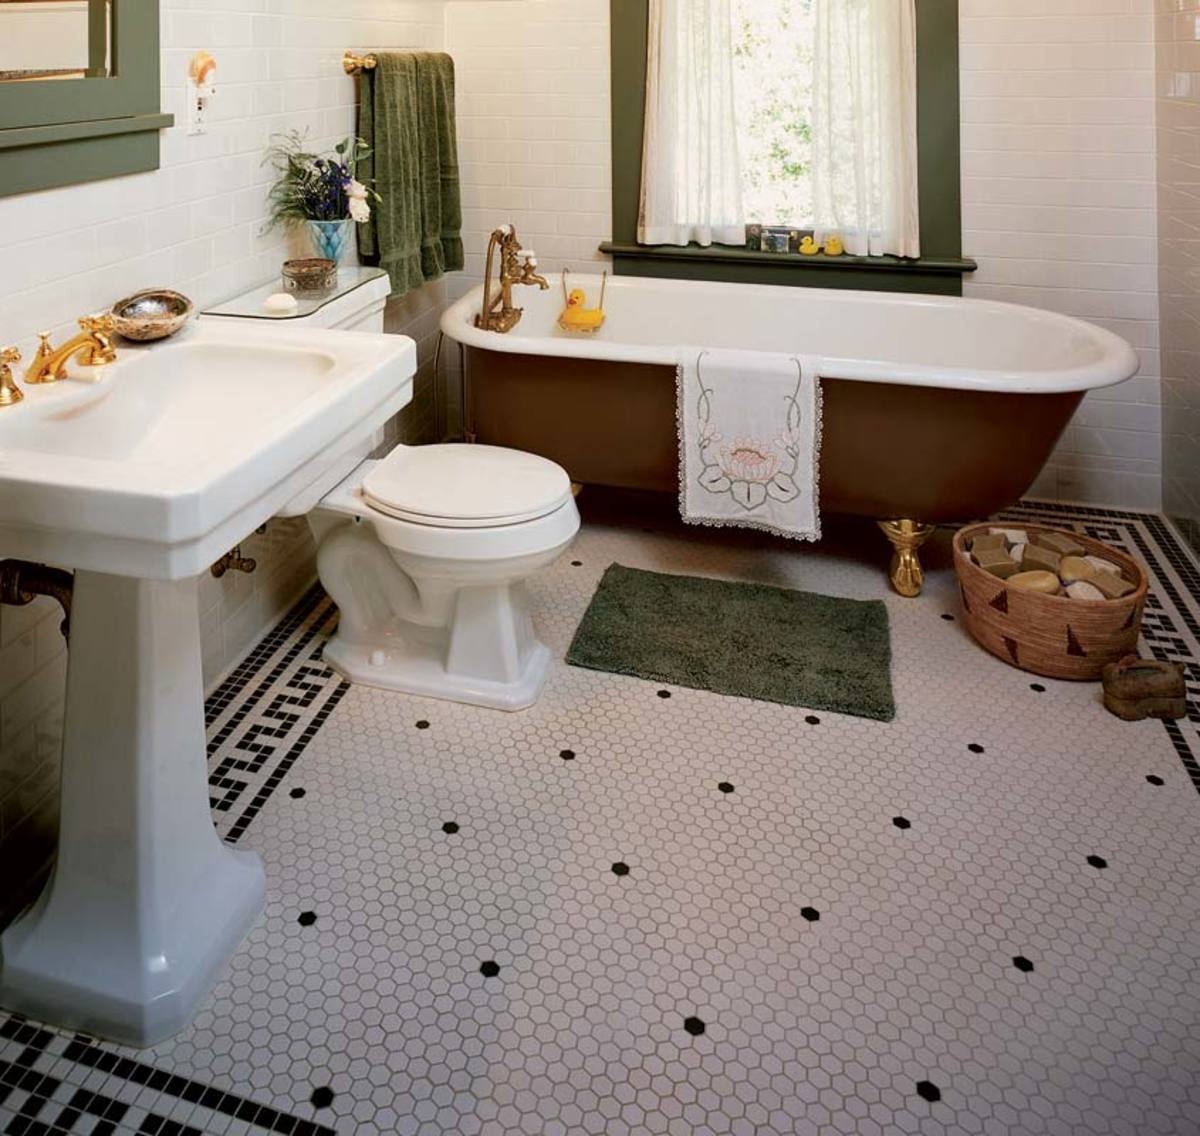 Bathroom Floor Tiles Victorian Style